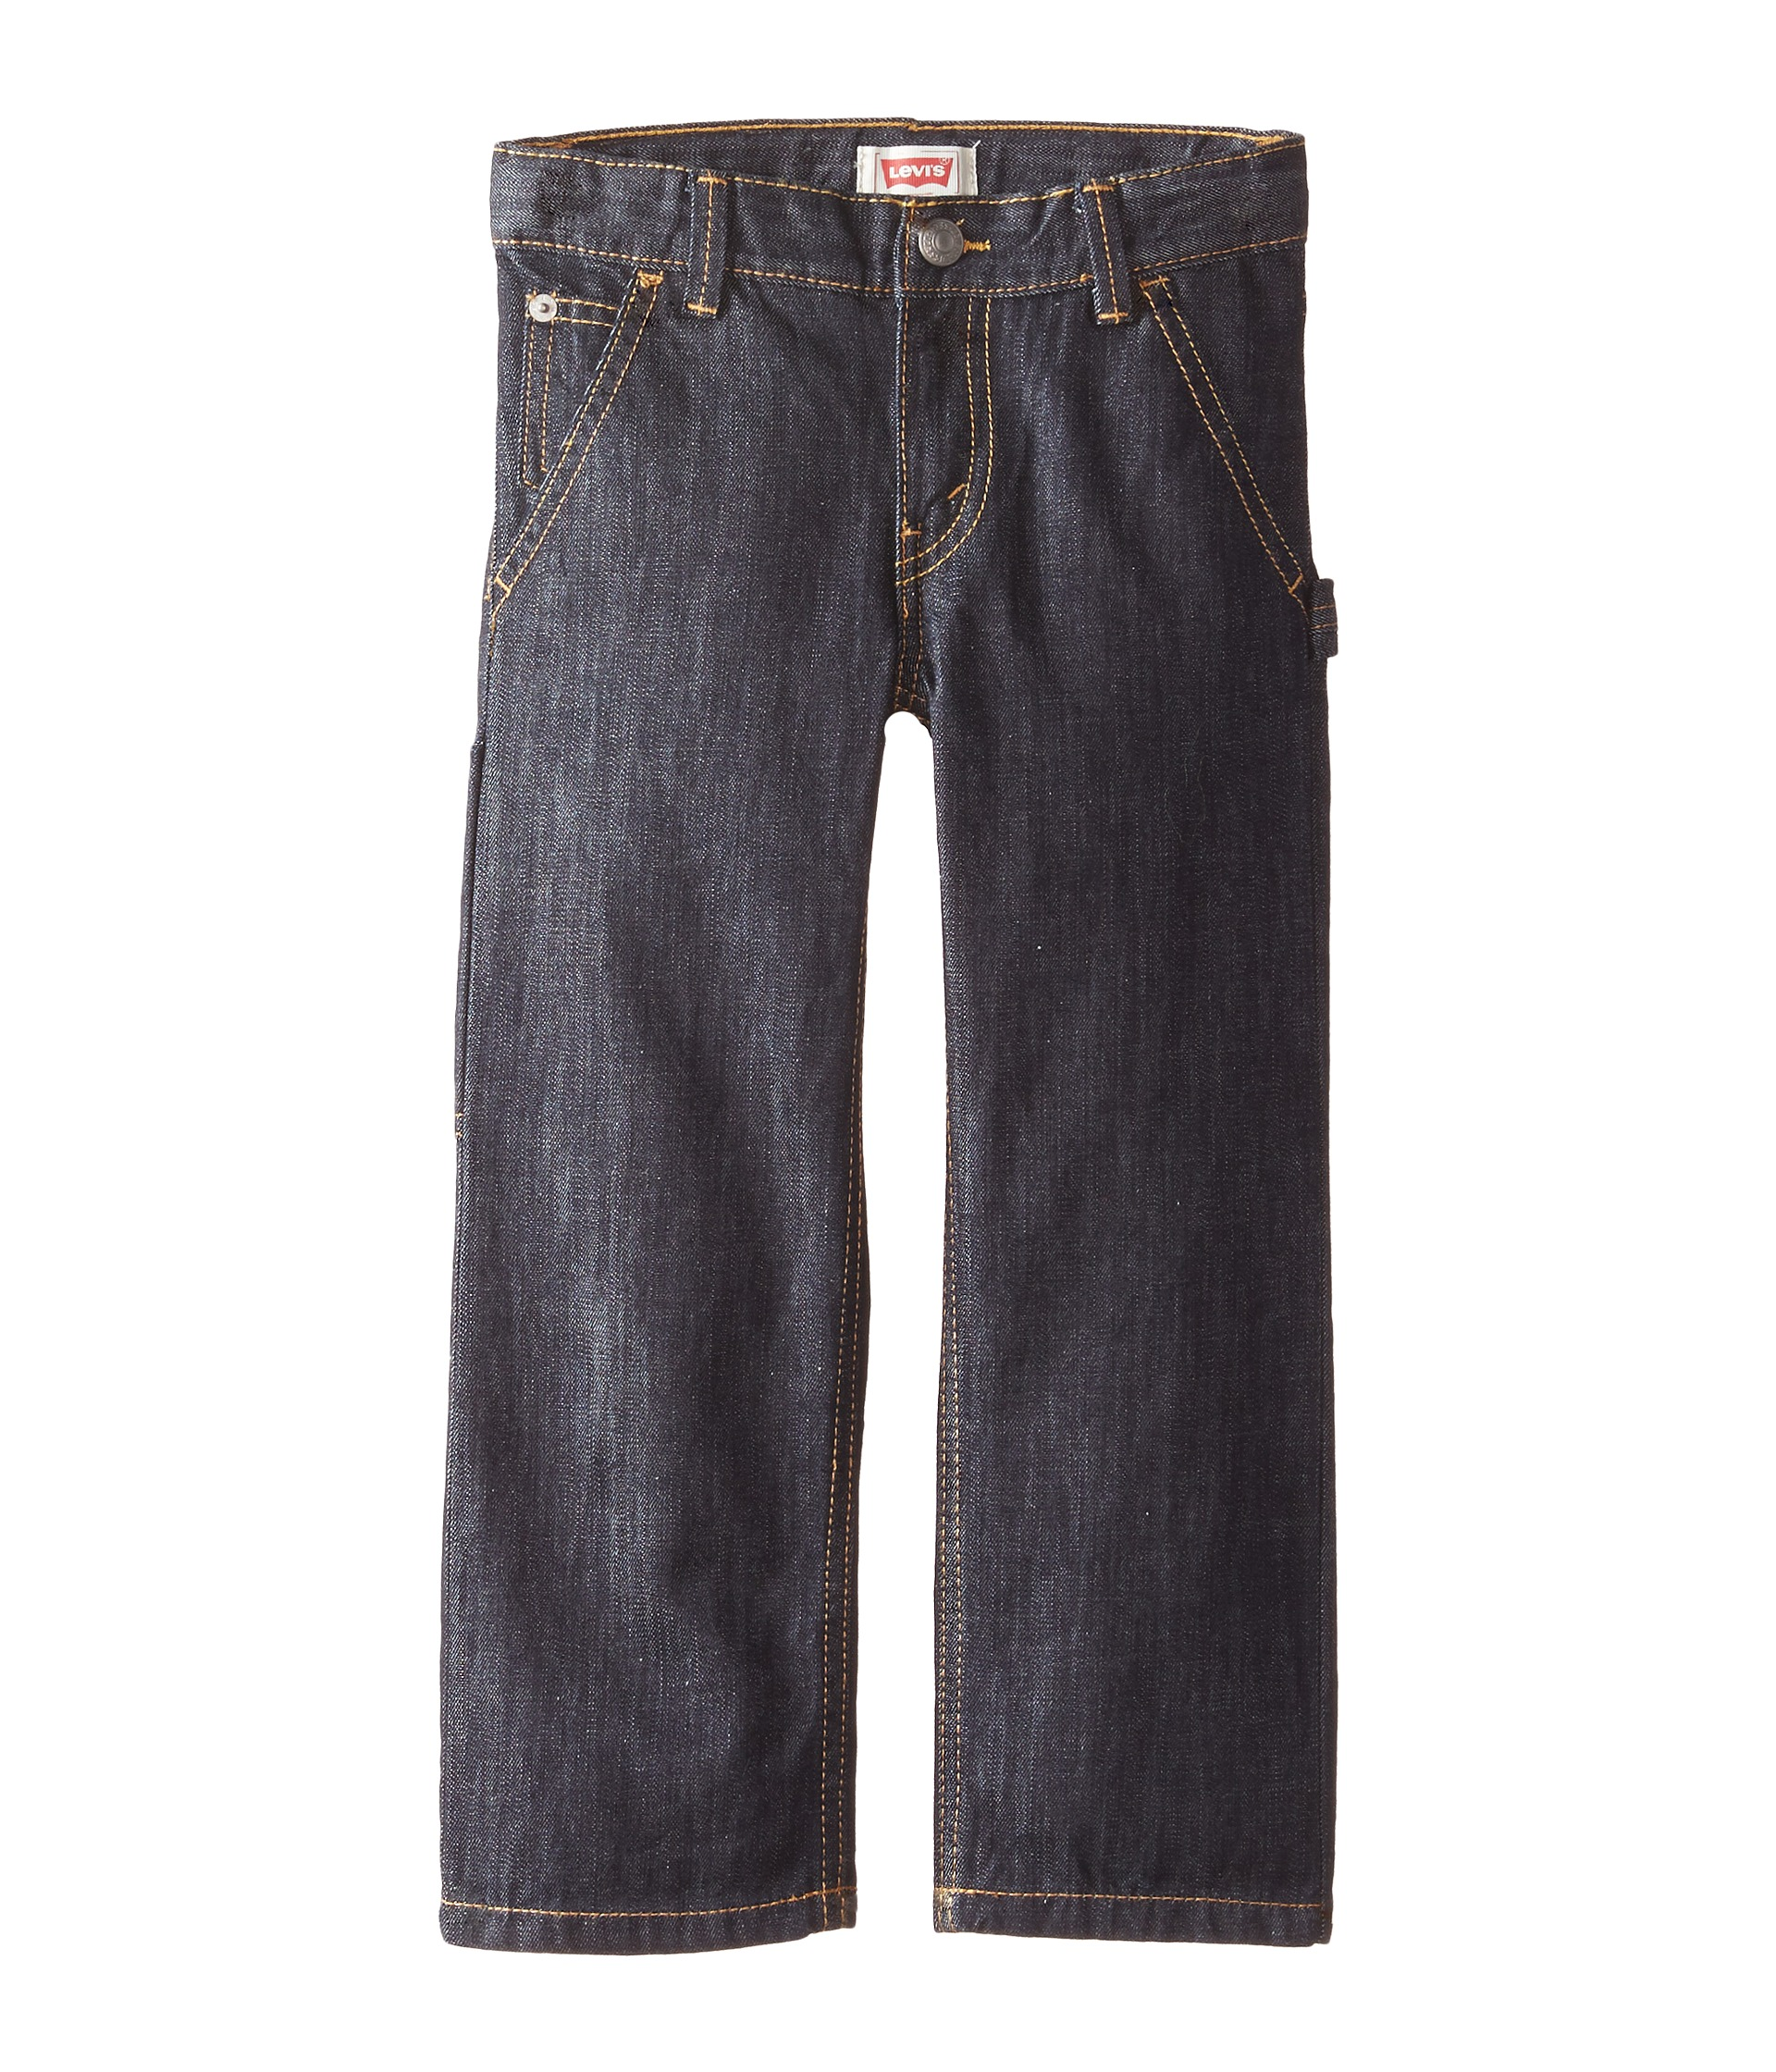 Find great deals on eBay for levi jeans kids. Shop with confidence.